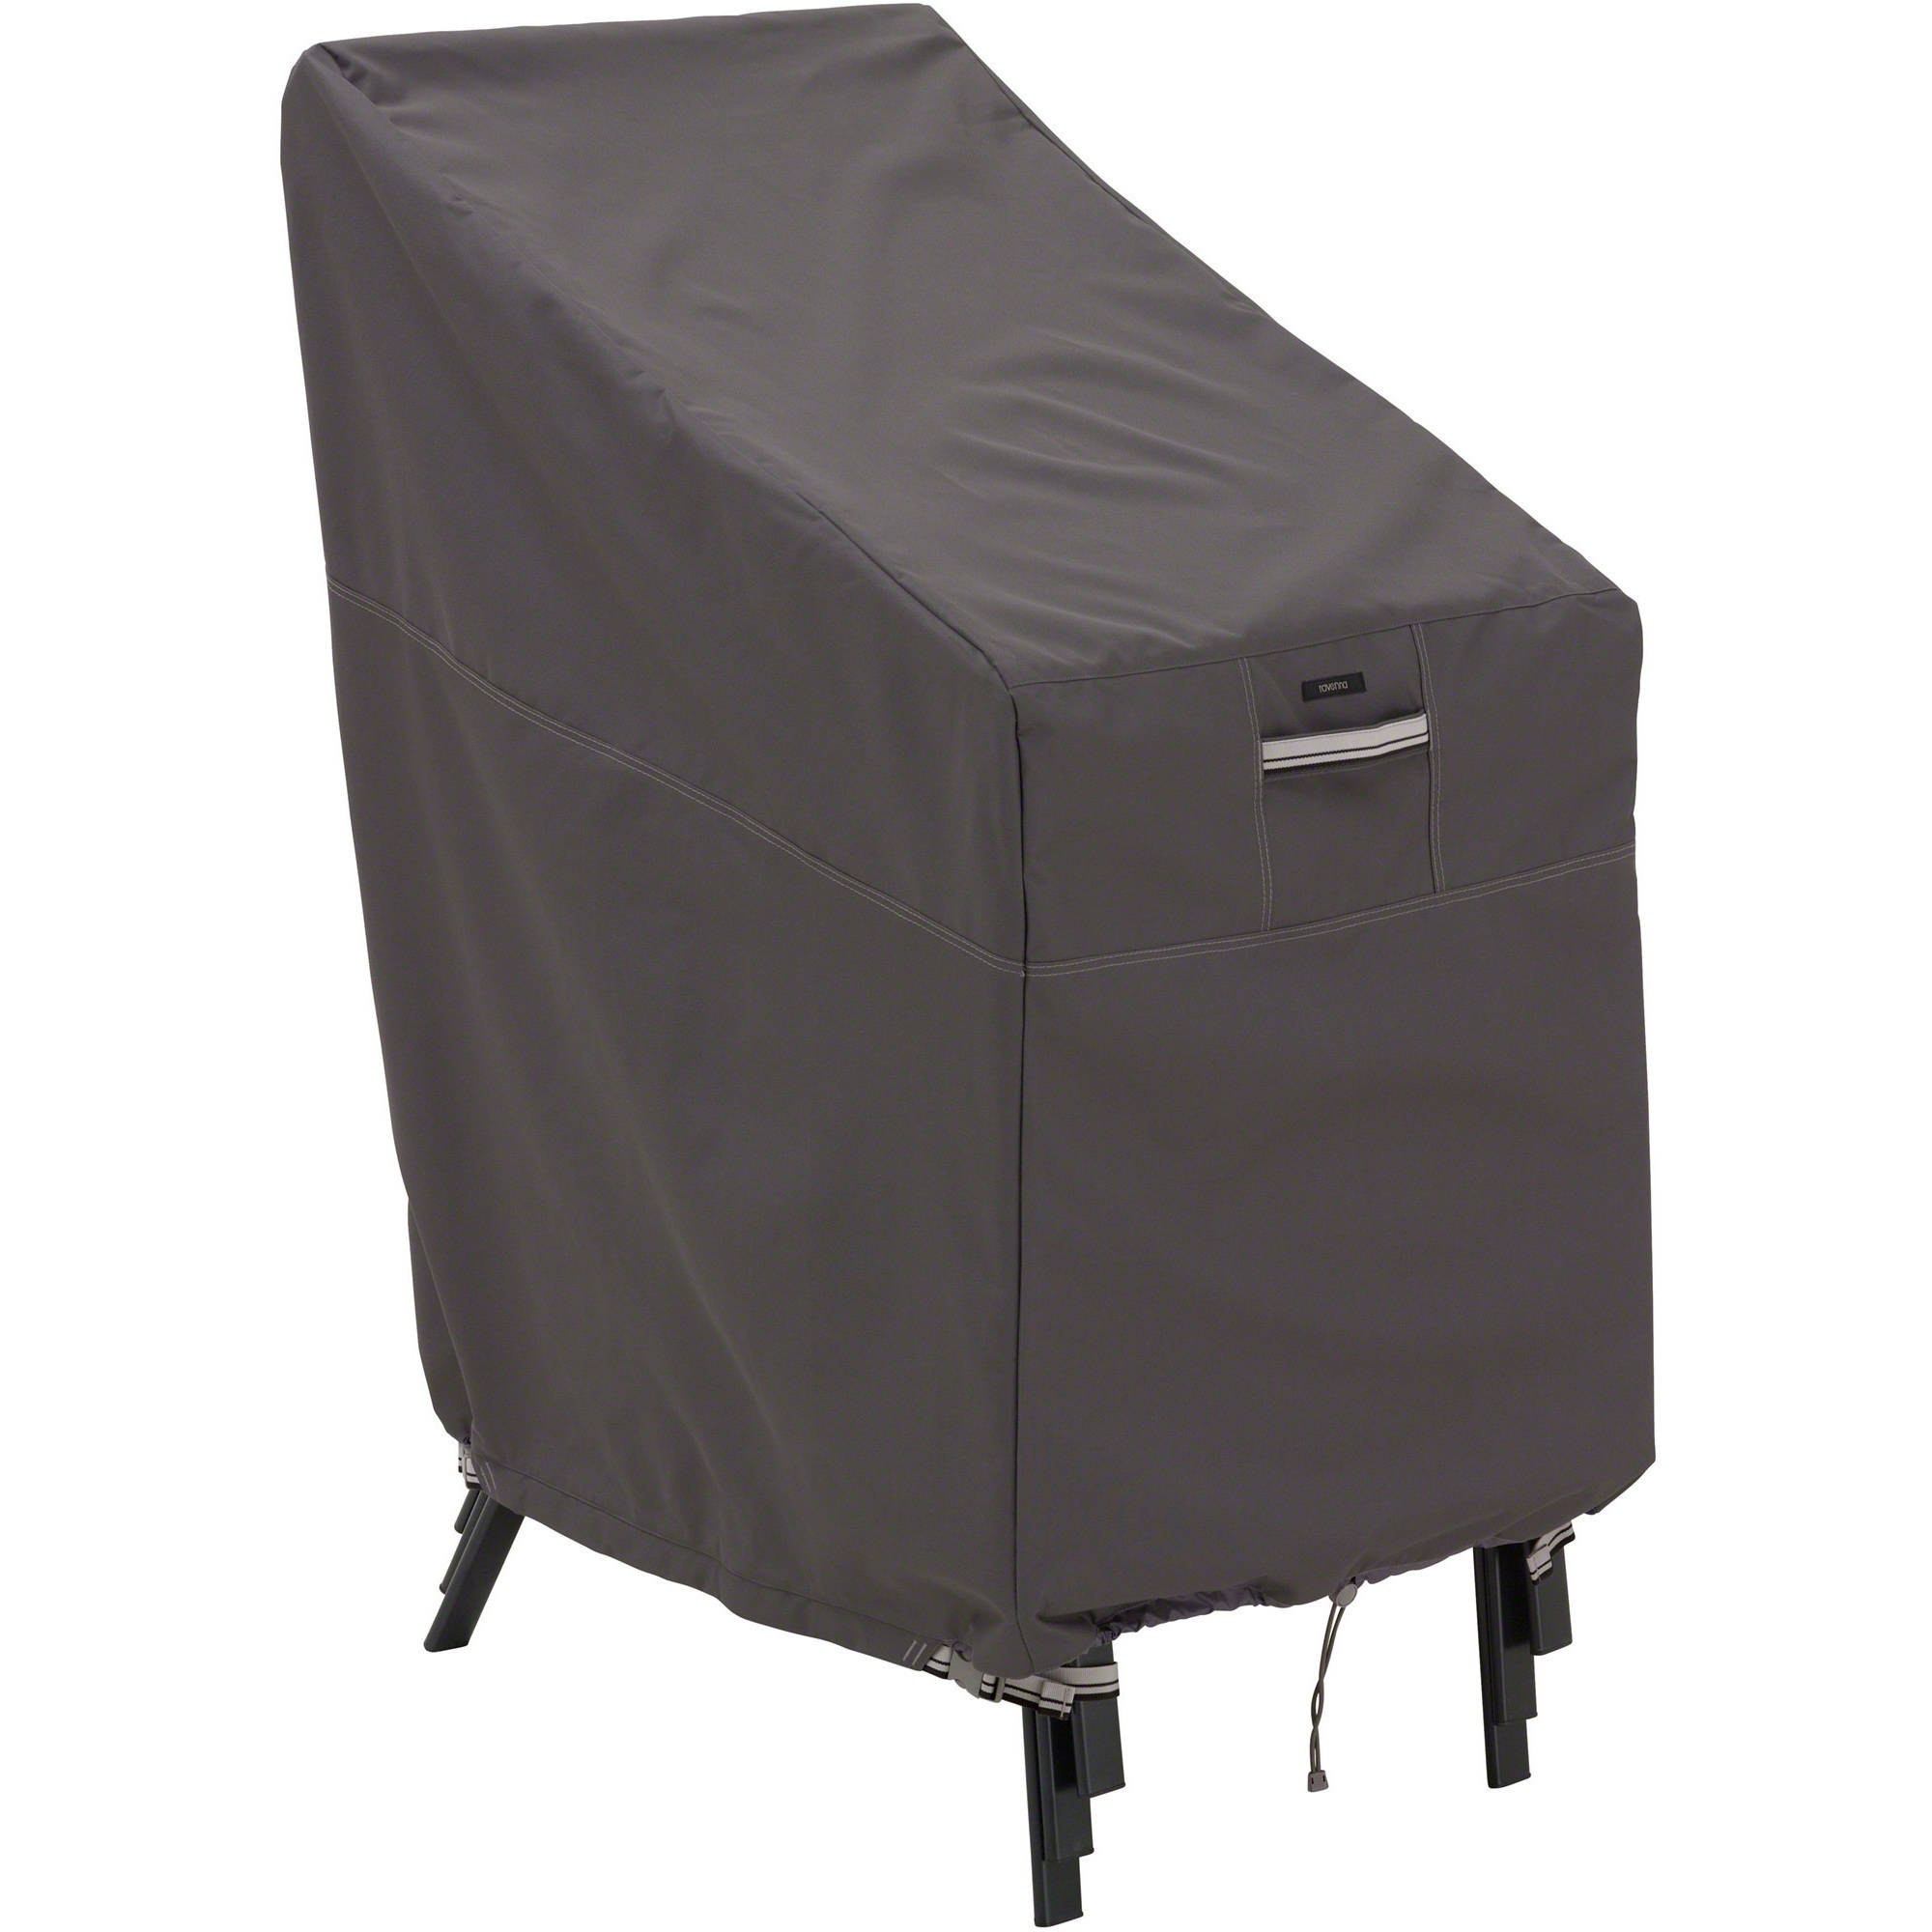 outdoor stackable chairs canada chair glides for sale classic accessories ravenna cover premium furniture with durable and water resistant fabric taupe 55 179 015101 ec